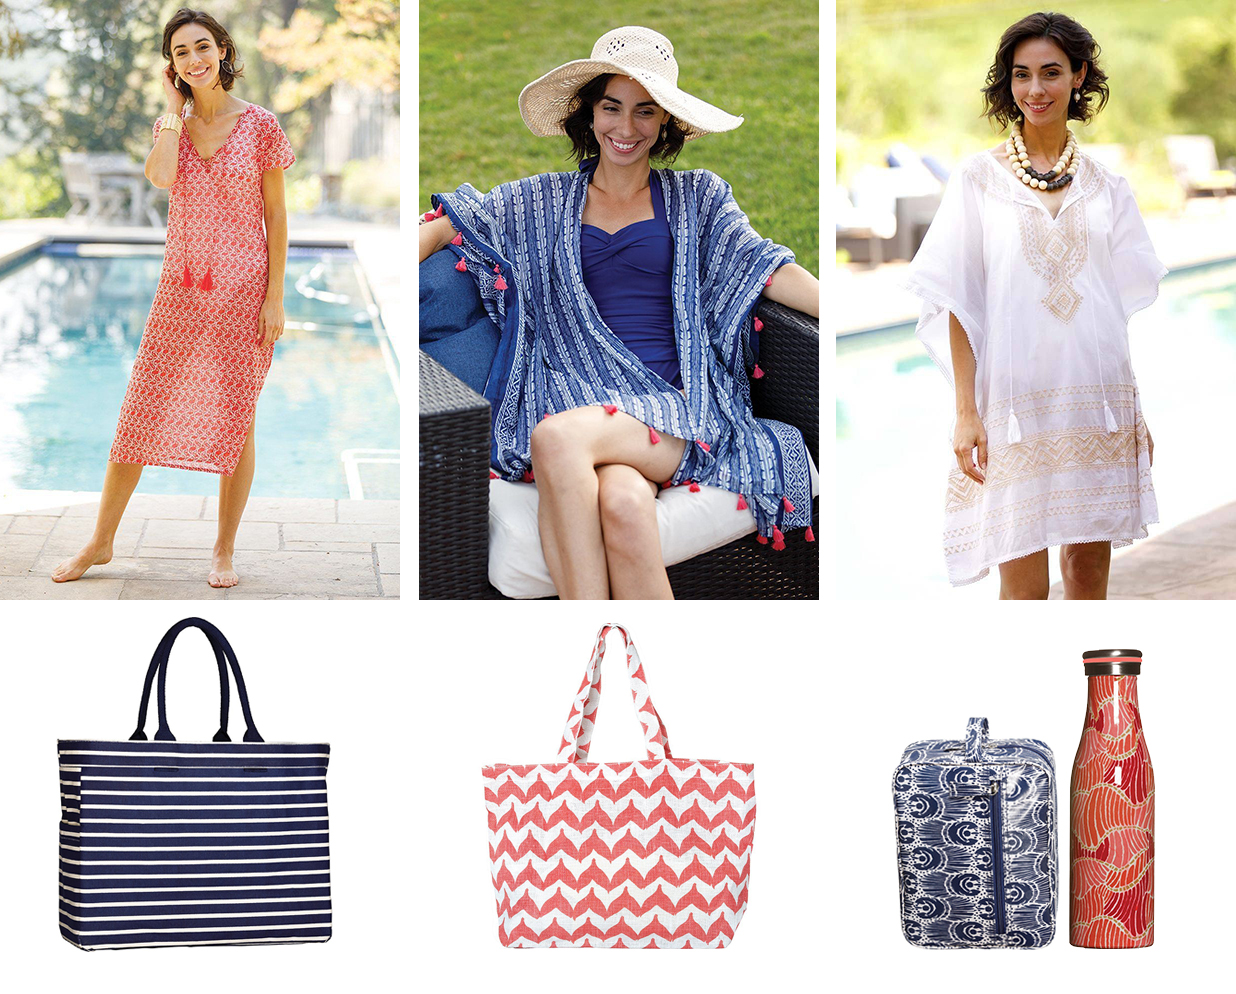 collage of casual beach outfits including red beach dress, blue beach kimono, white embroidered kaftan, and tote bags